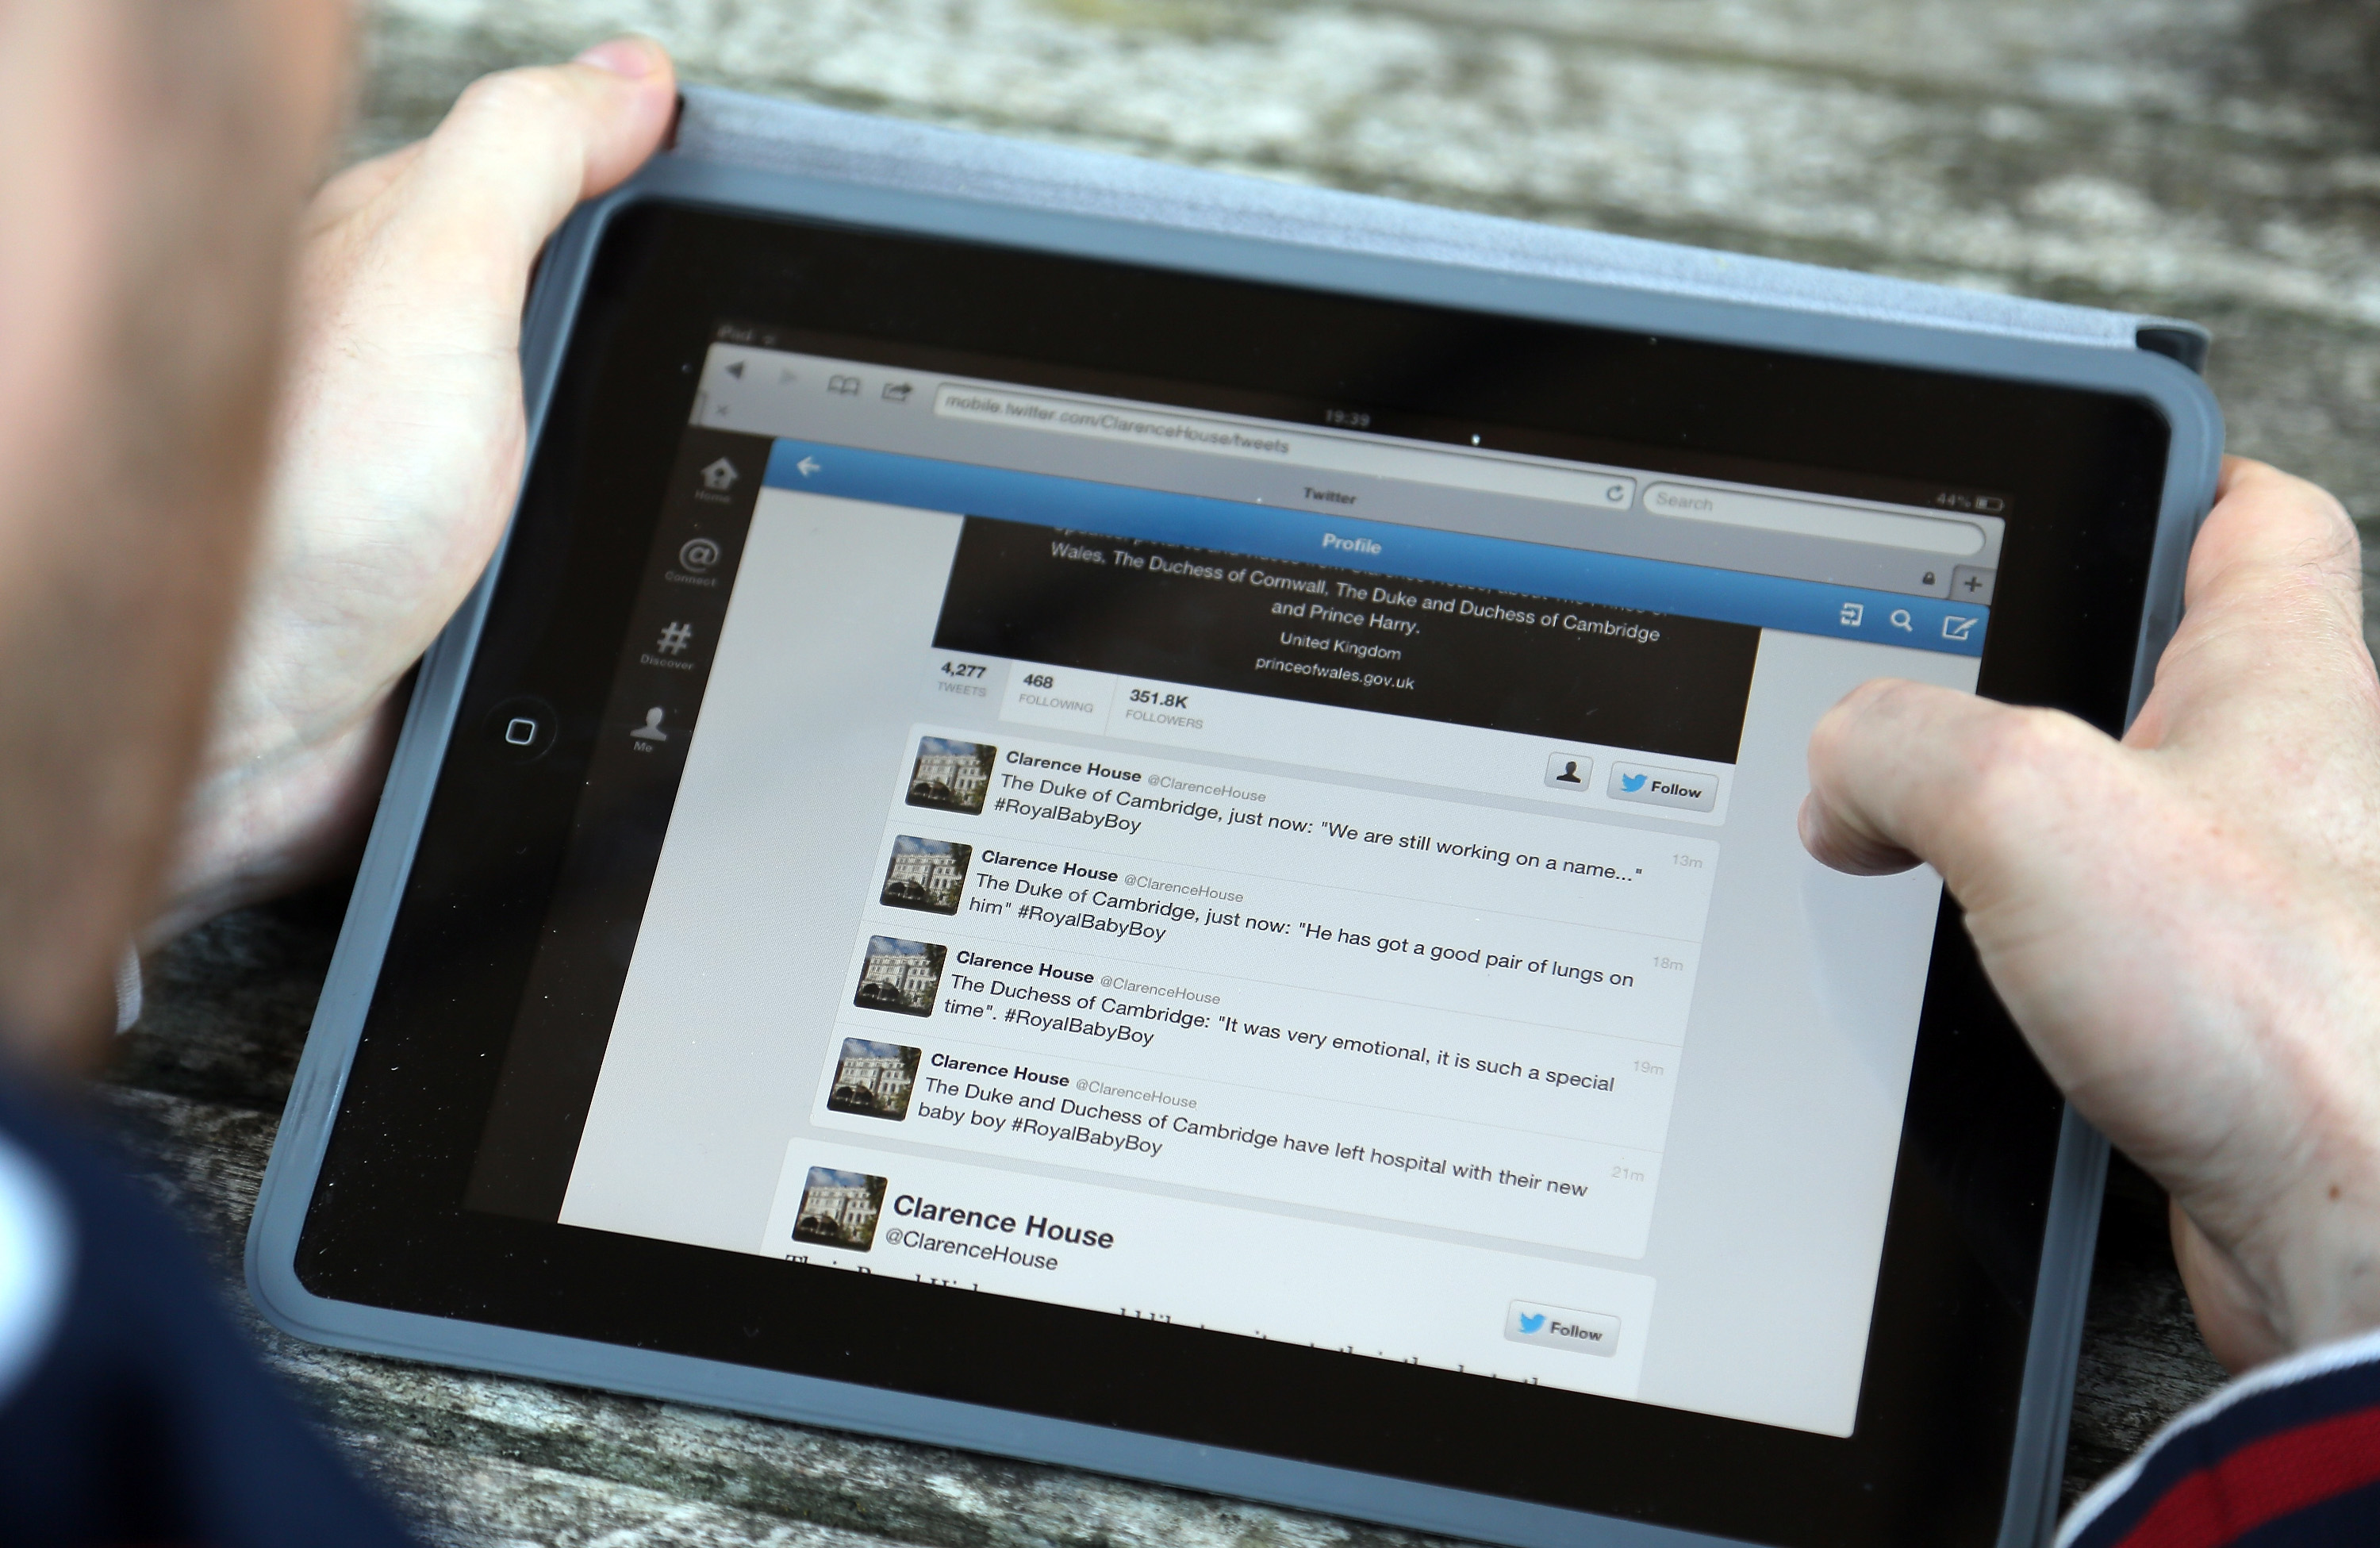 How to recover deleted files on ipad air